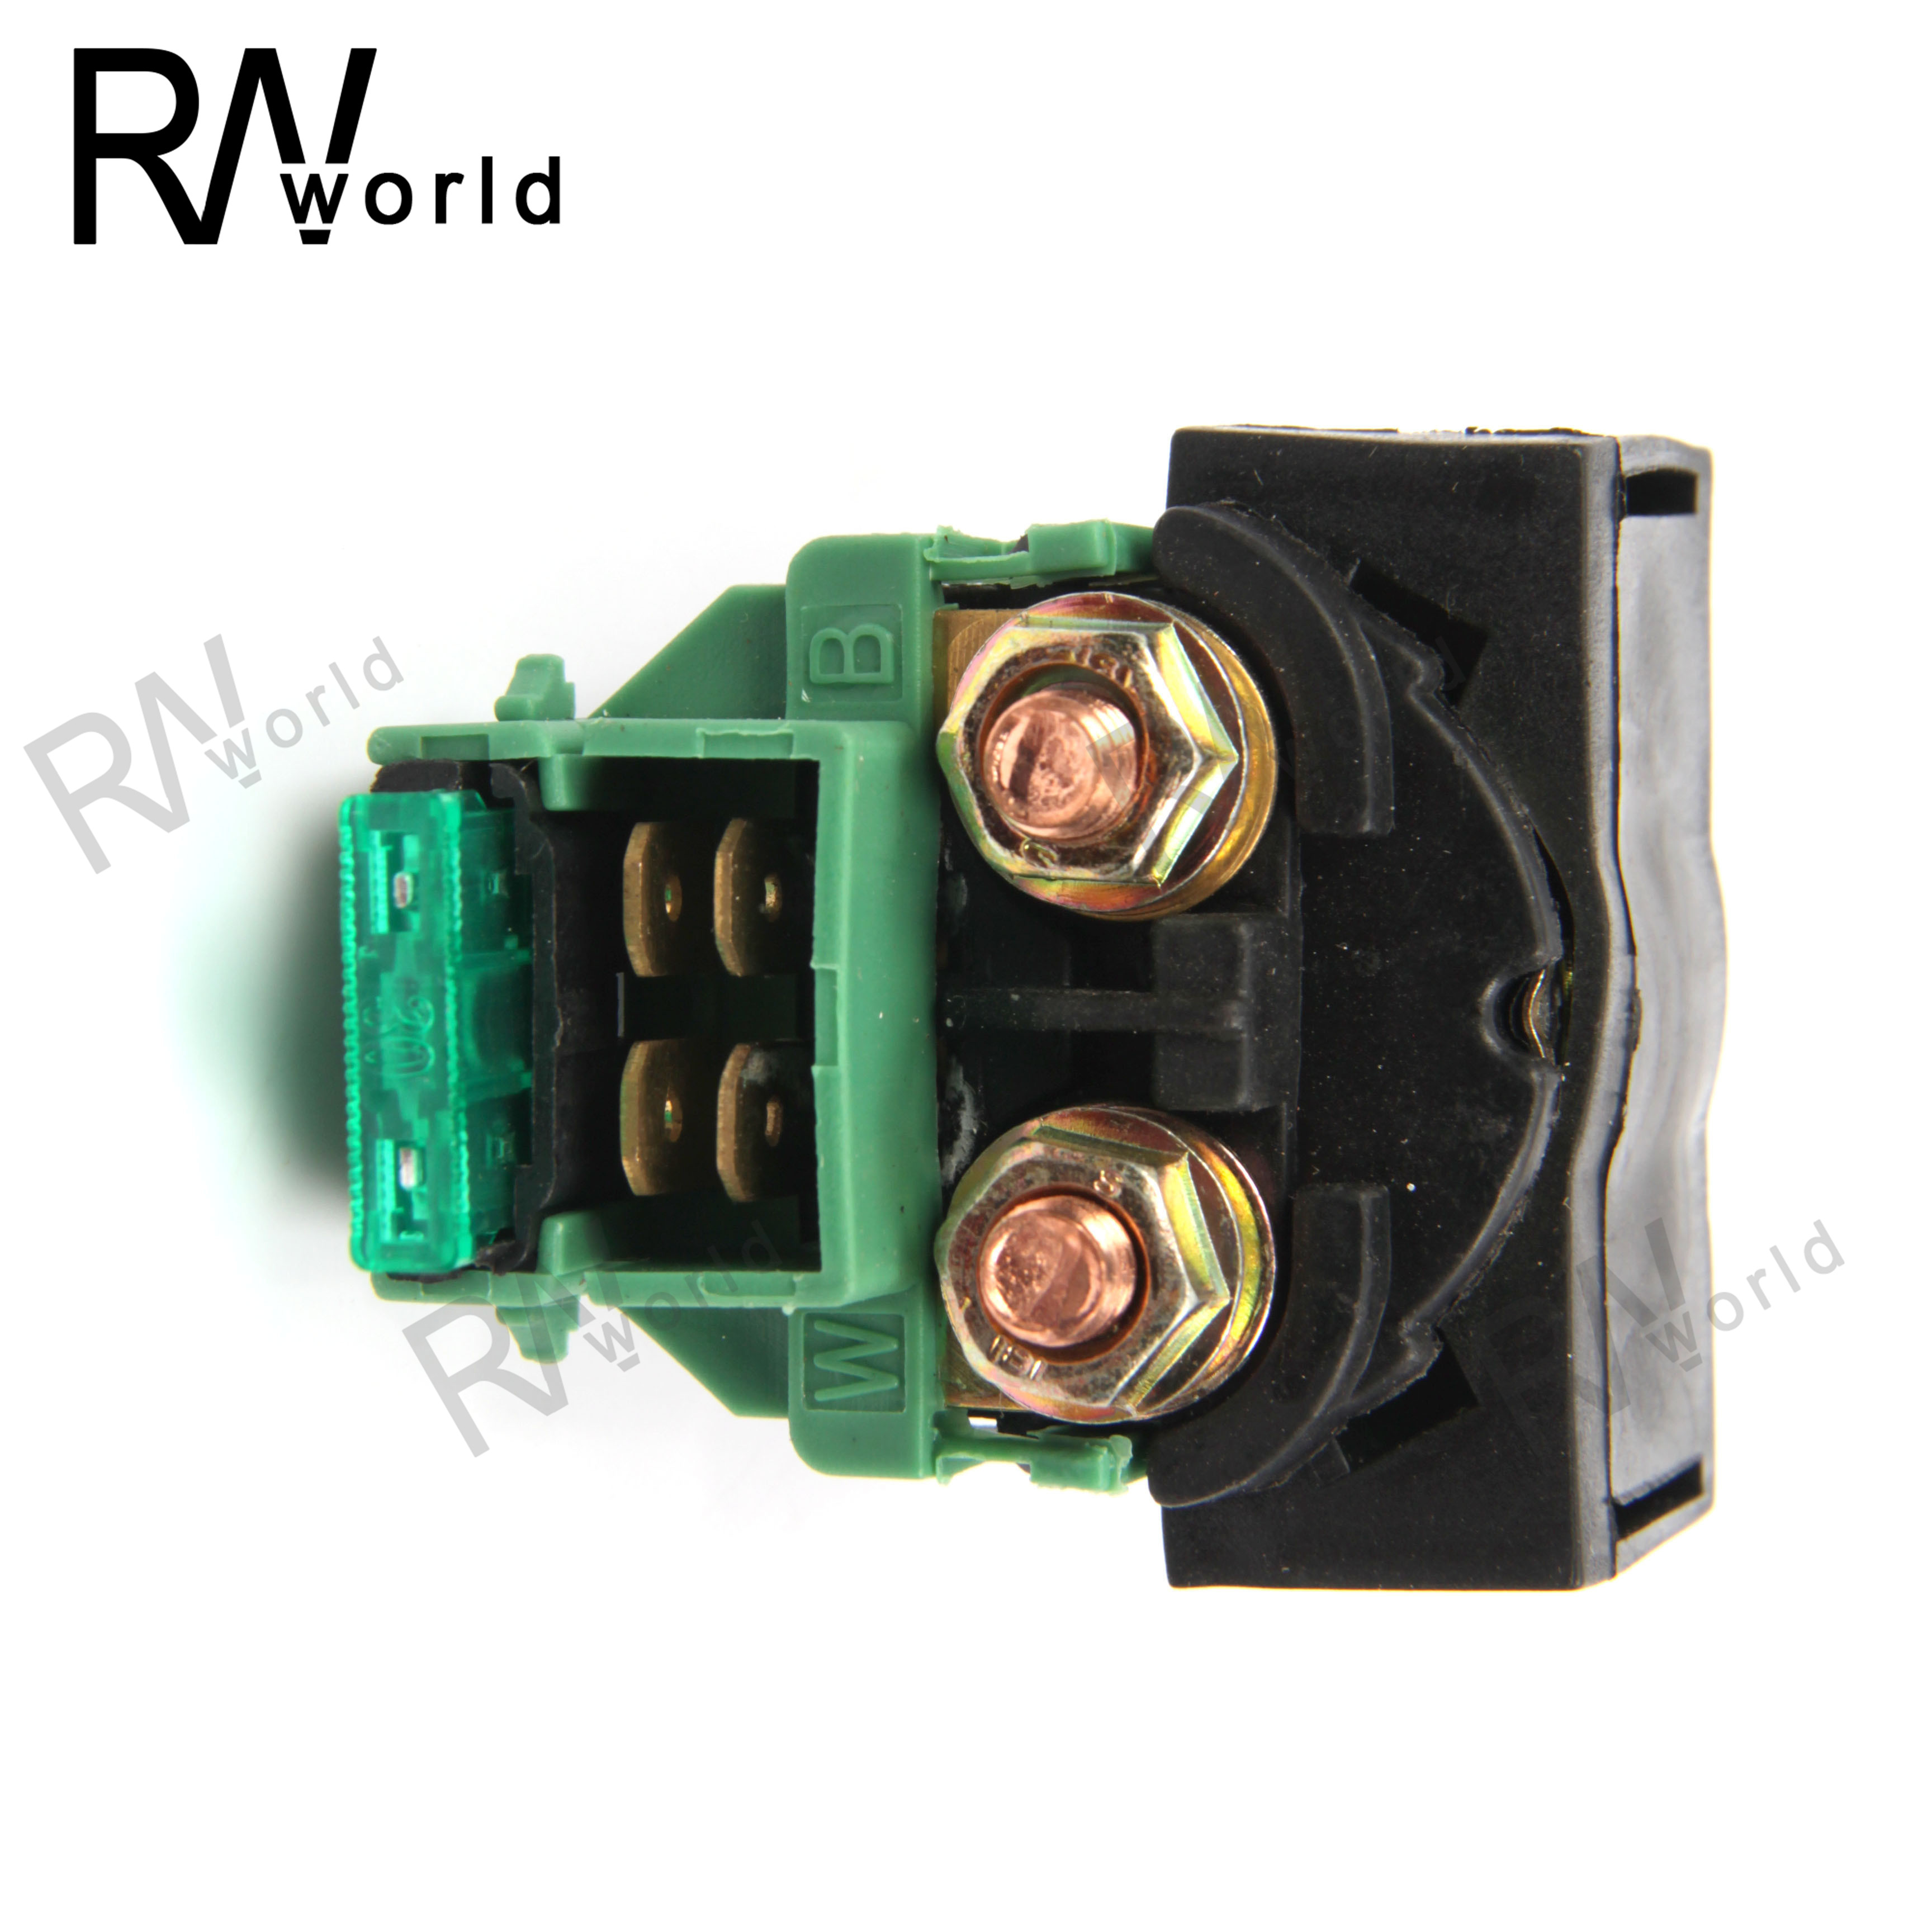 Motorcycle Electrical Relay Starter Solenoid Accessories For <font><b>HONDA</b></font> GL500 <font><b>GL</b></font> <font><b>500</b></font> SILVER WING INTERSTATE /CB900 1981 1982 image